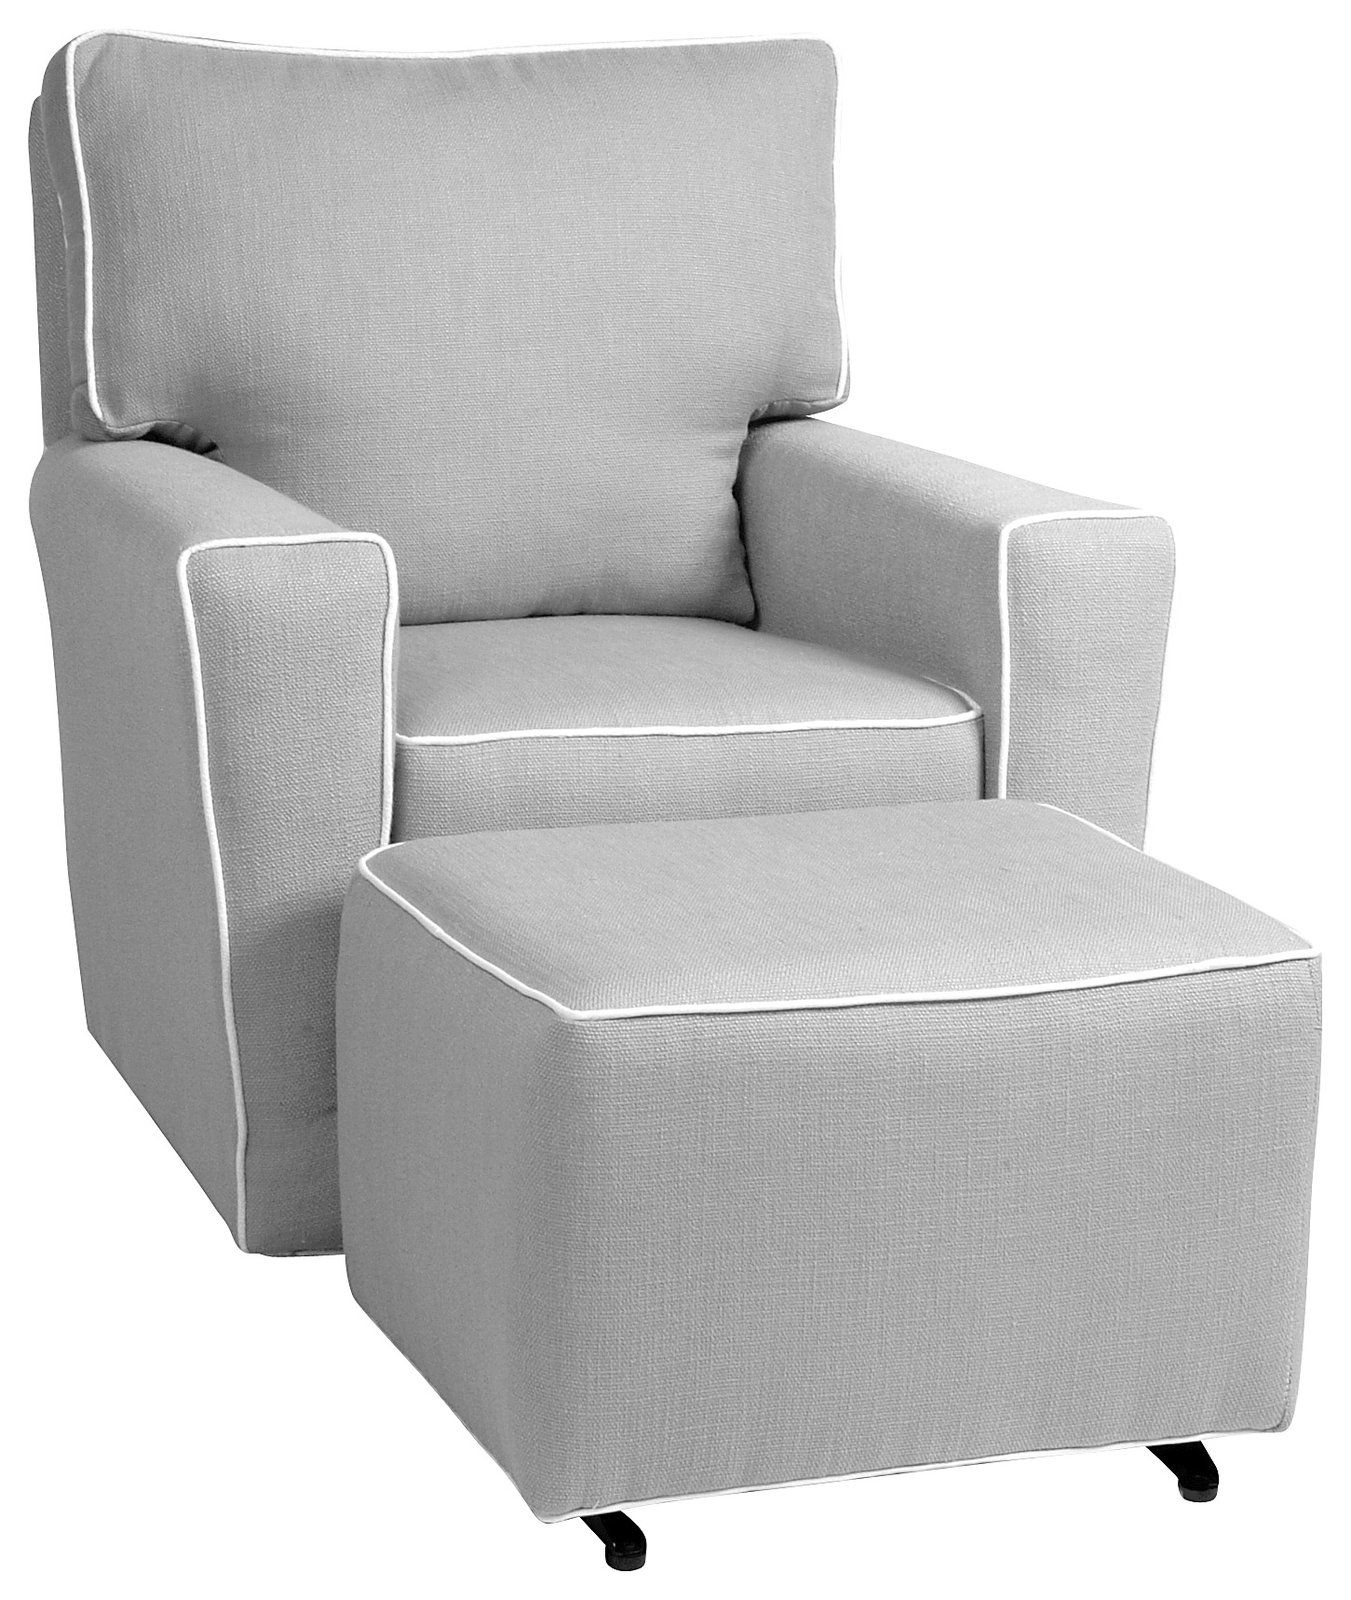 White Castle Glider | Little Castle Monaco Ii Glider – Pebble Grey W Throughout Gliders With Ottoman (View 5 of 10)